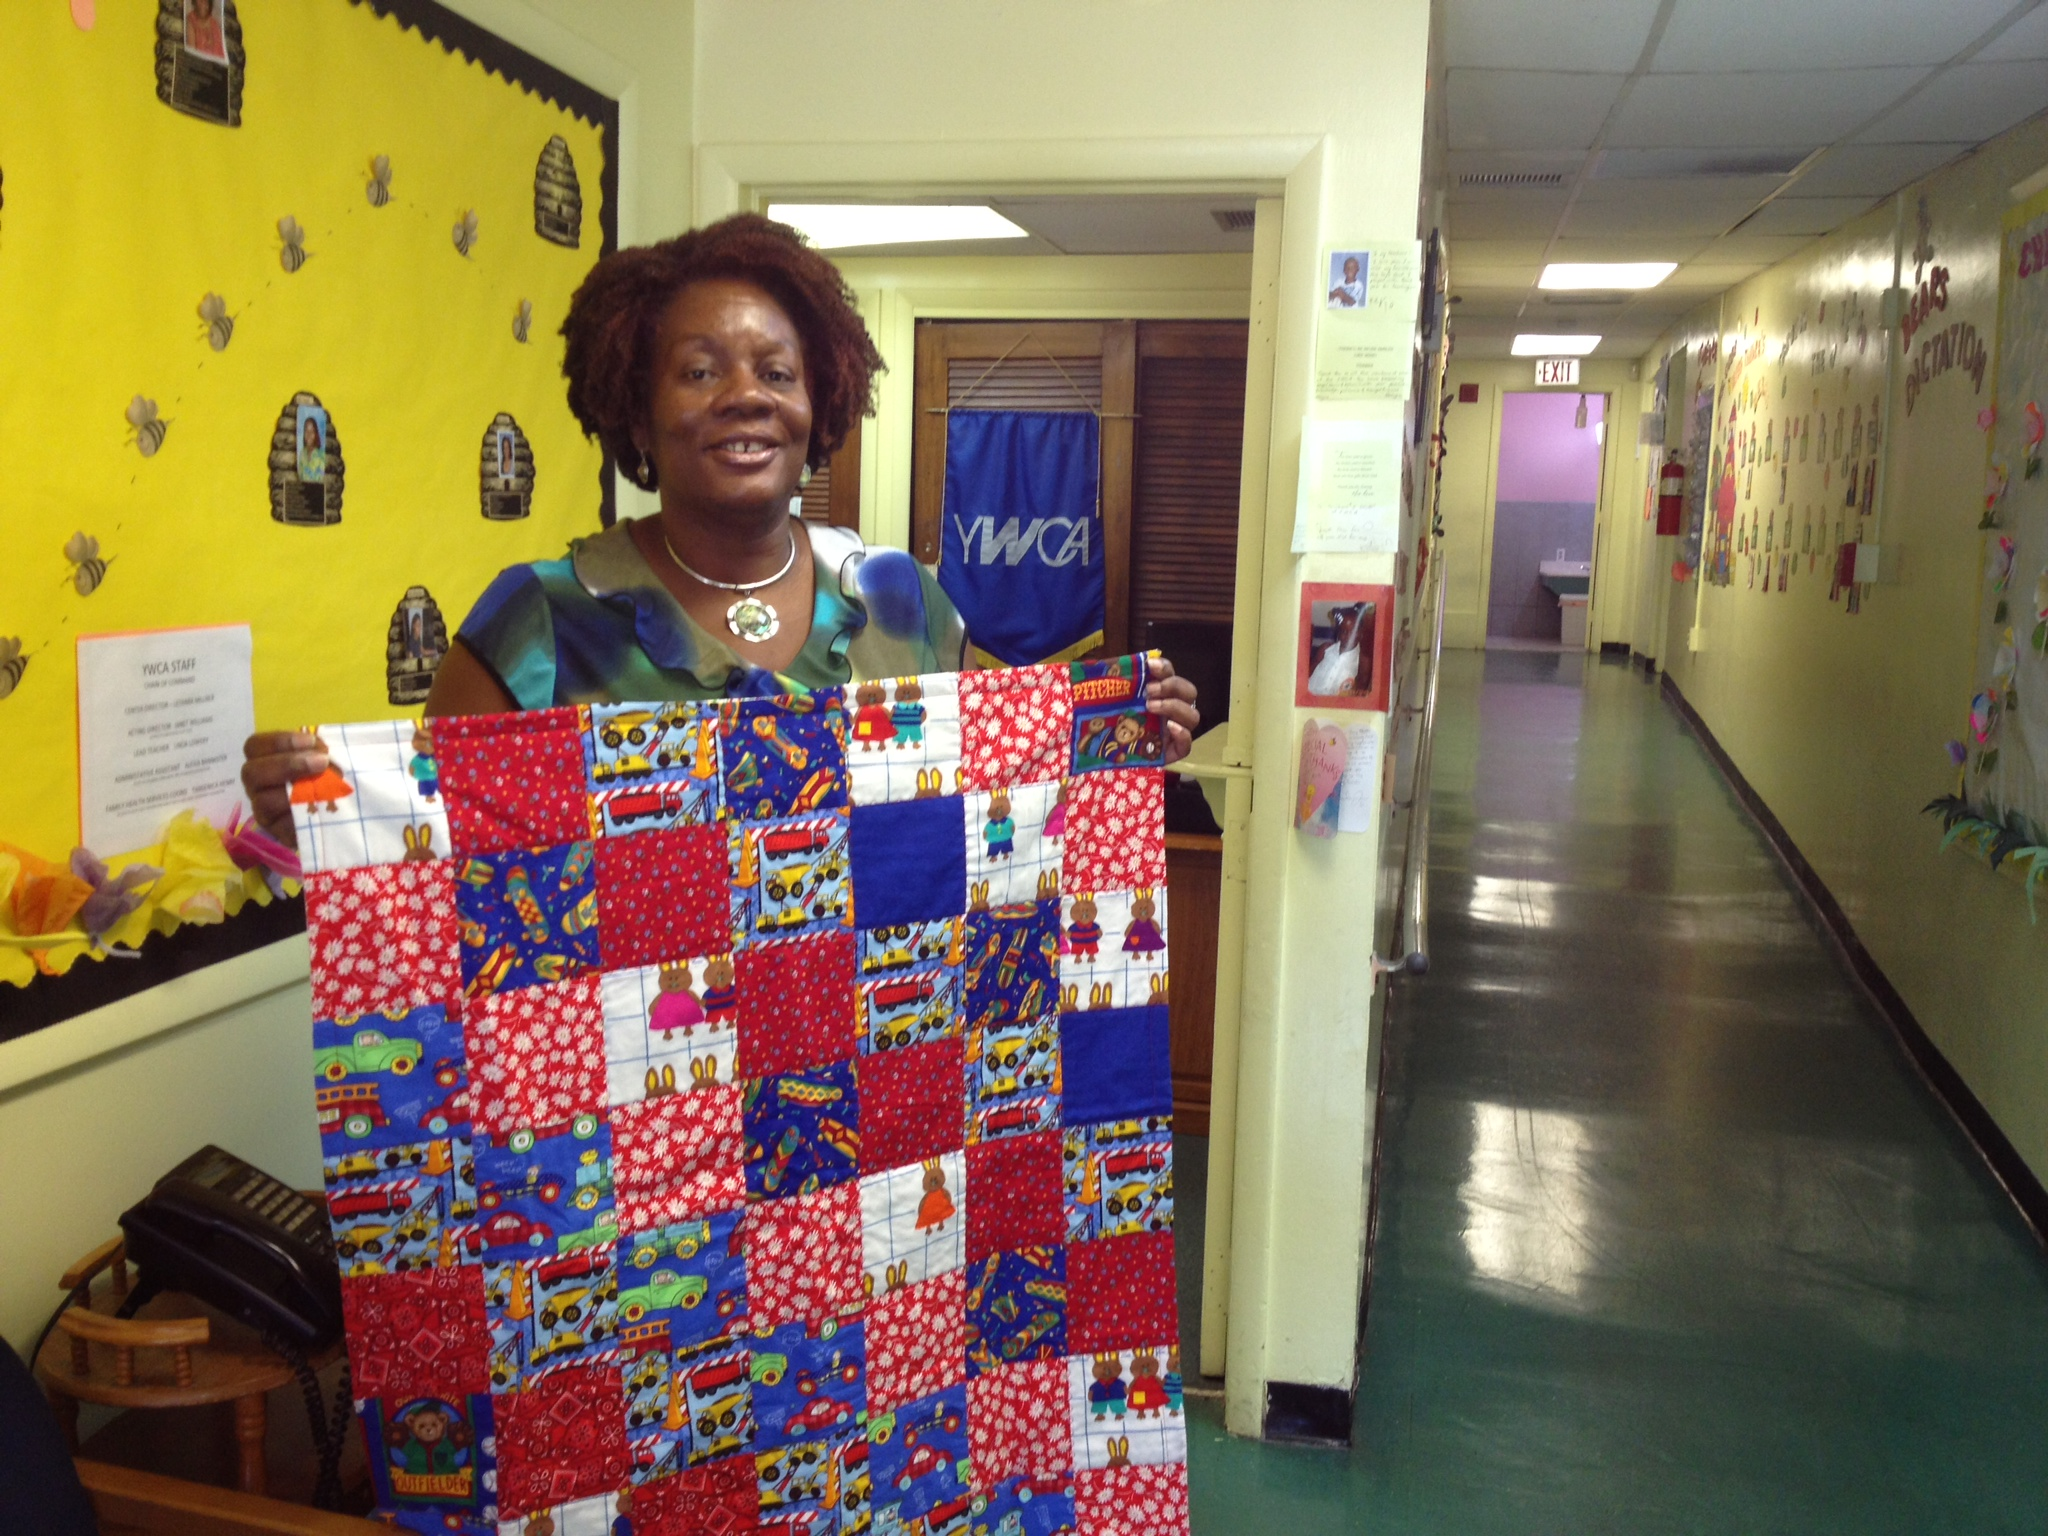 Lethera Millner, Director of the YWCA Child Development Center in West Palm Beach, with quilt donated through Center for Child Counseling.